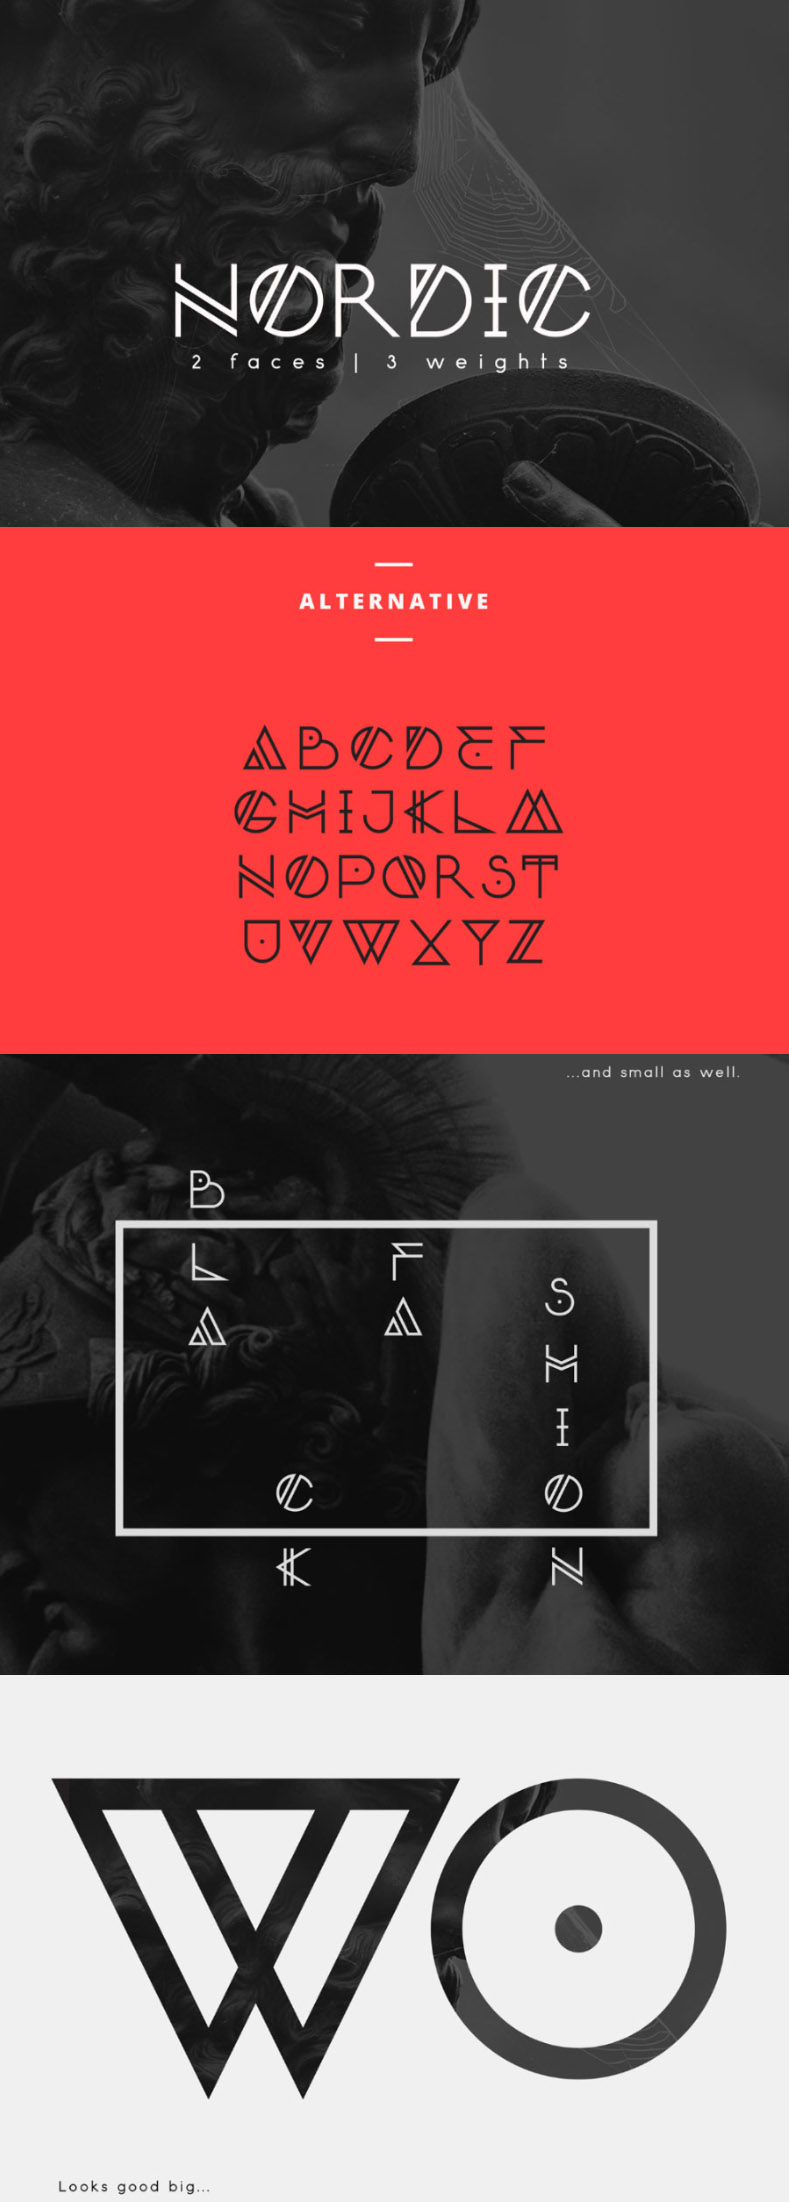 Nordic Free Font - Free Design Resources